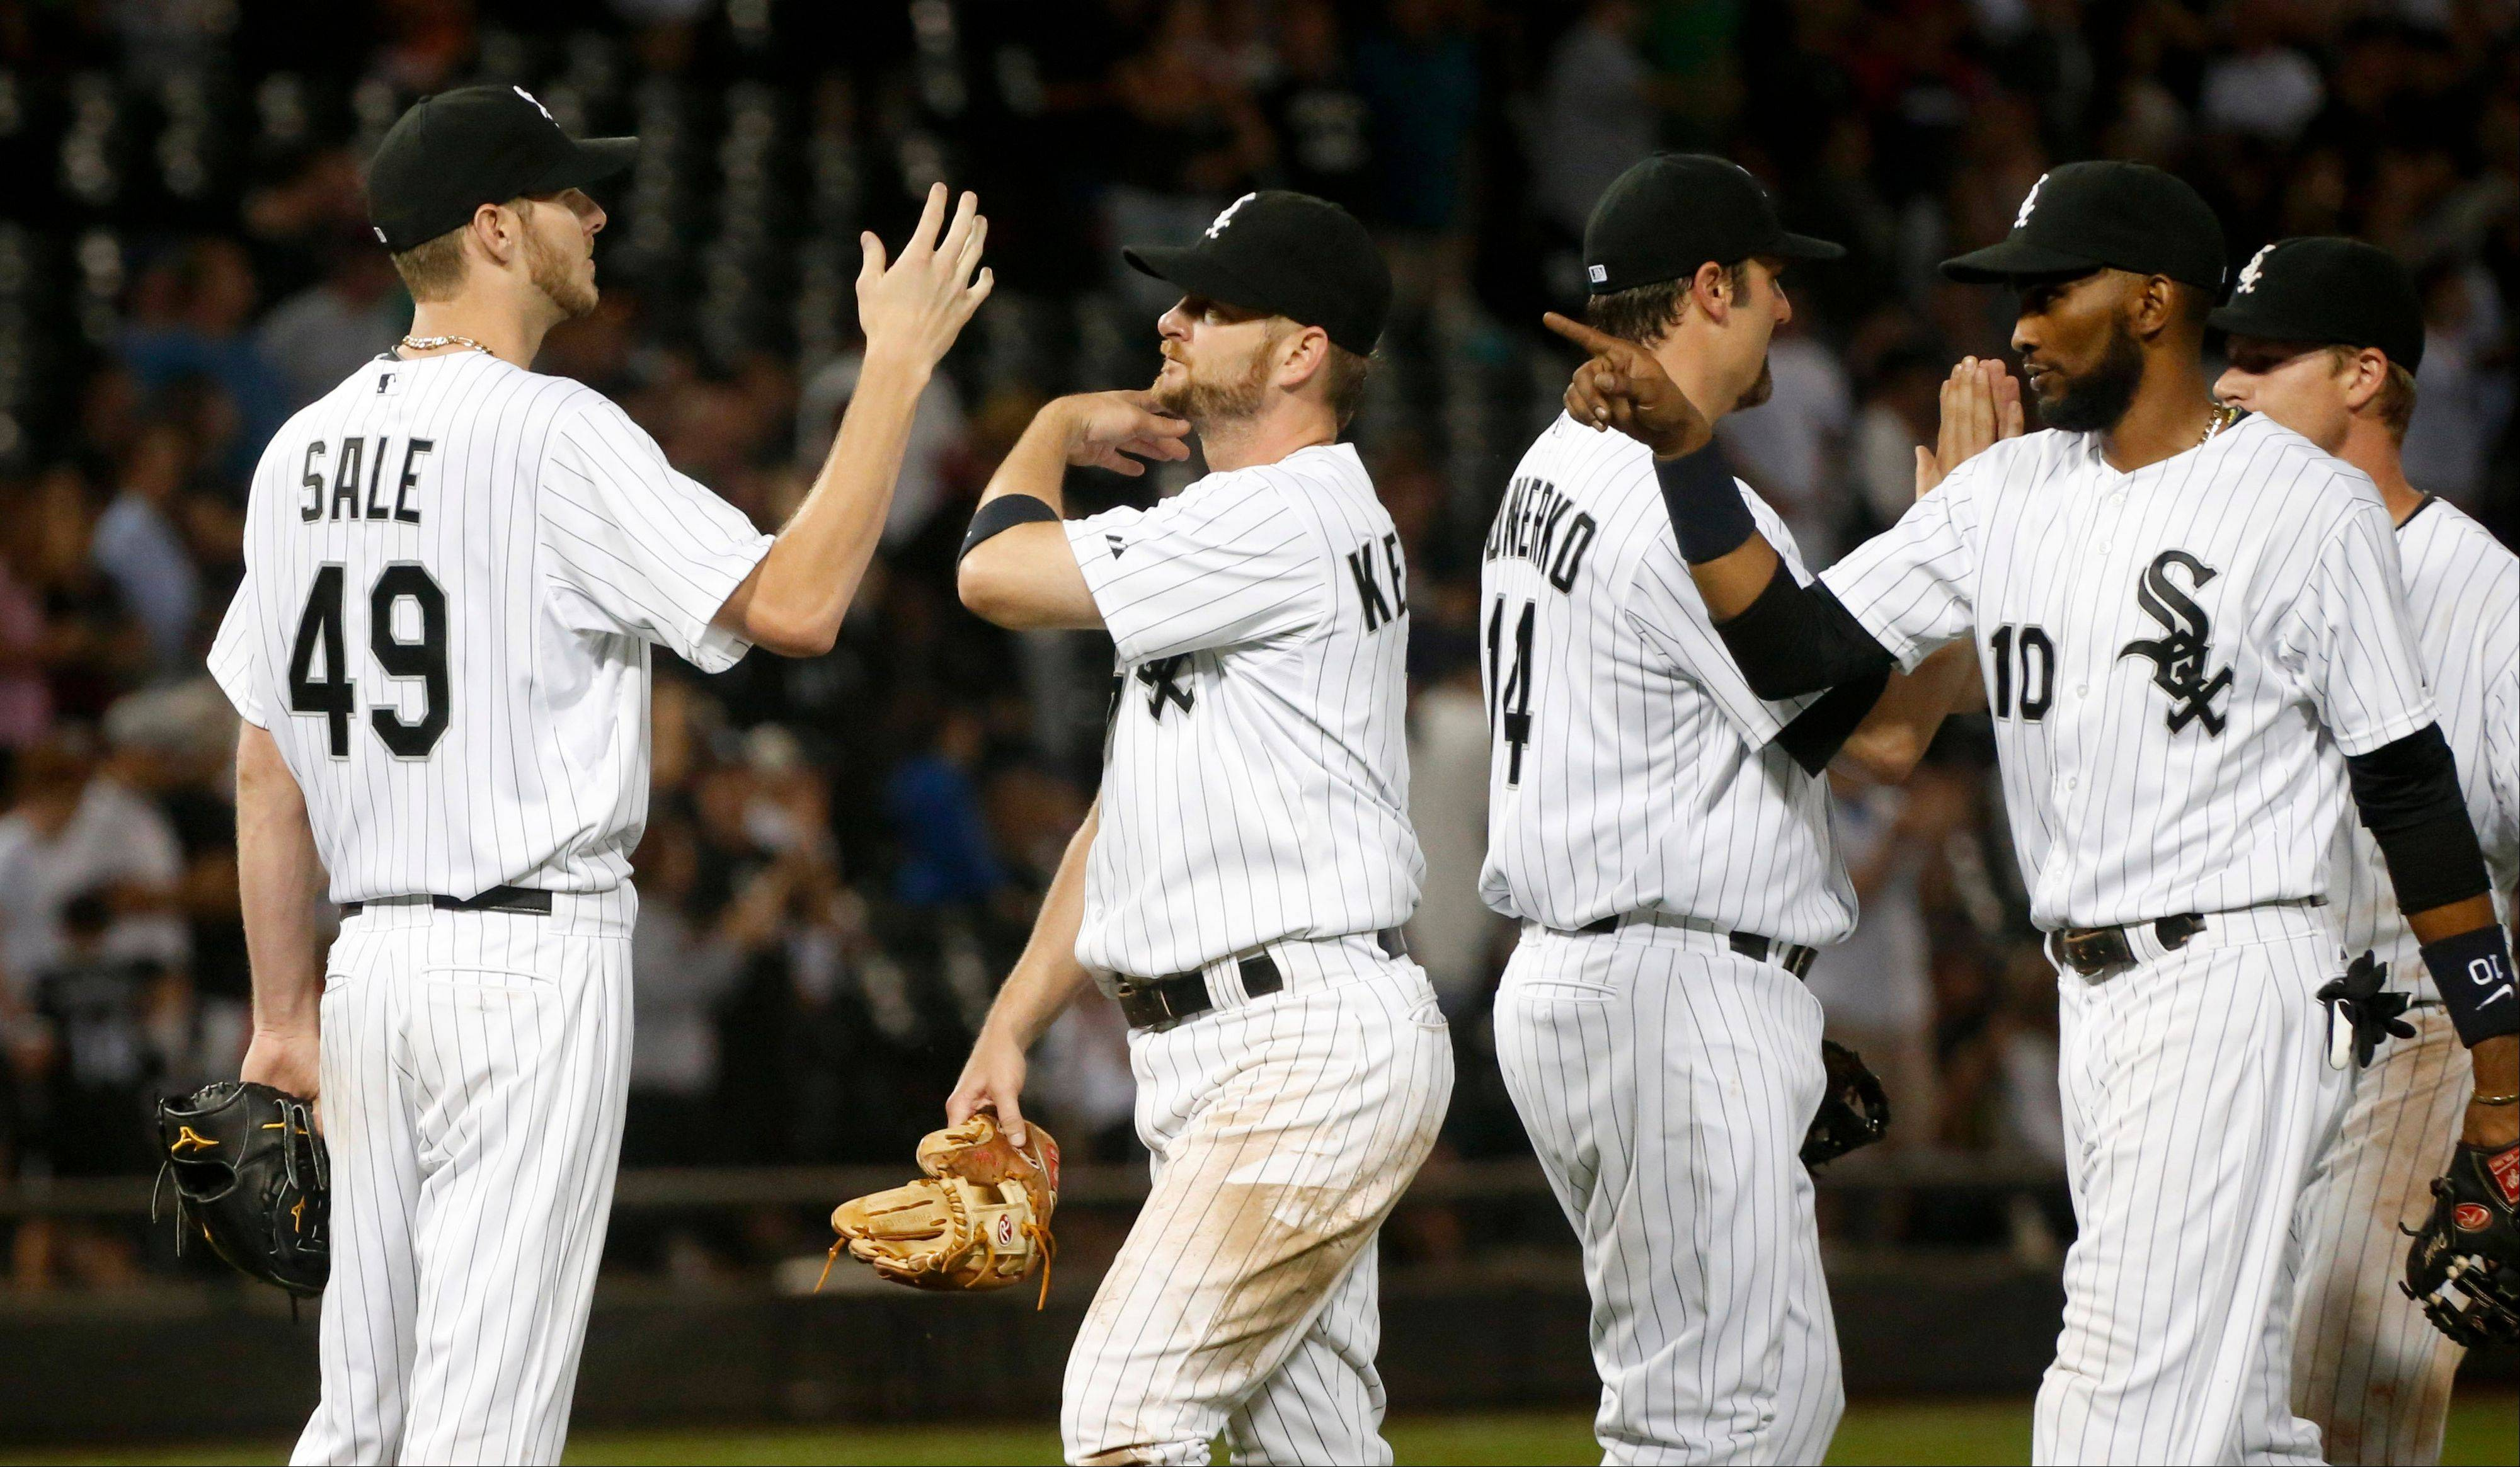 White Sox starting pitcher Chris Sale, left, celebrates his complete game win over the Tigers with Jeff Keppinger, center and Alexei Ramirez on Monday at U.S. Cellular Field.